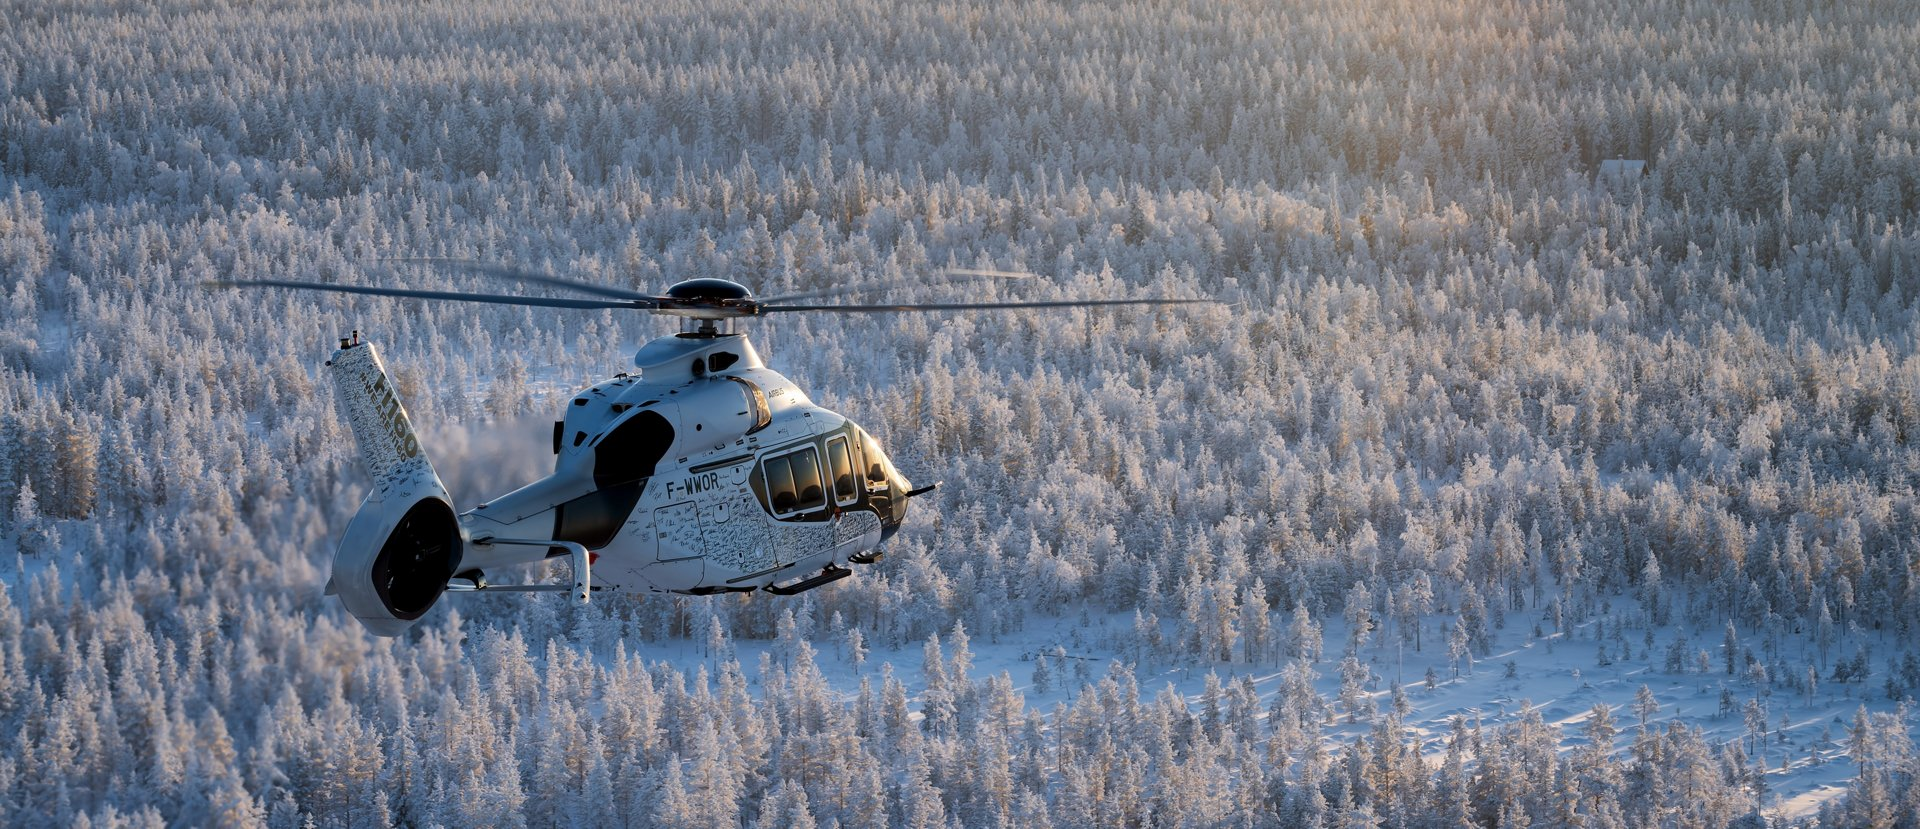 Decarbonising helicopters